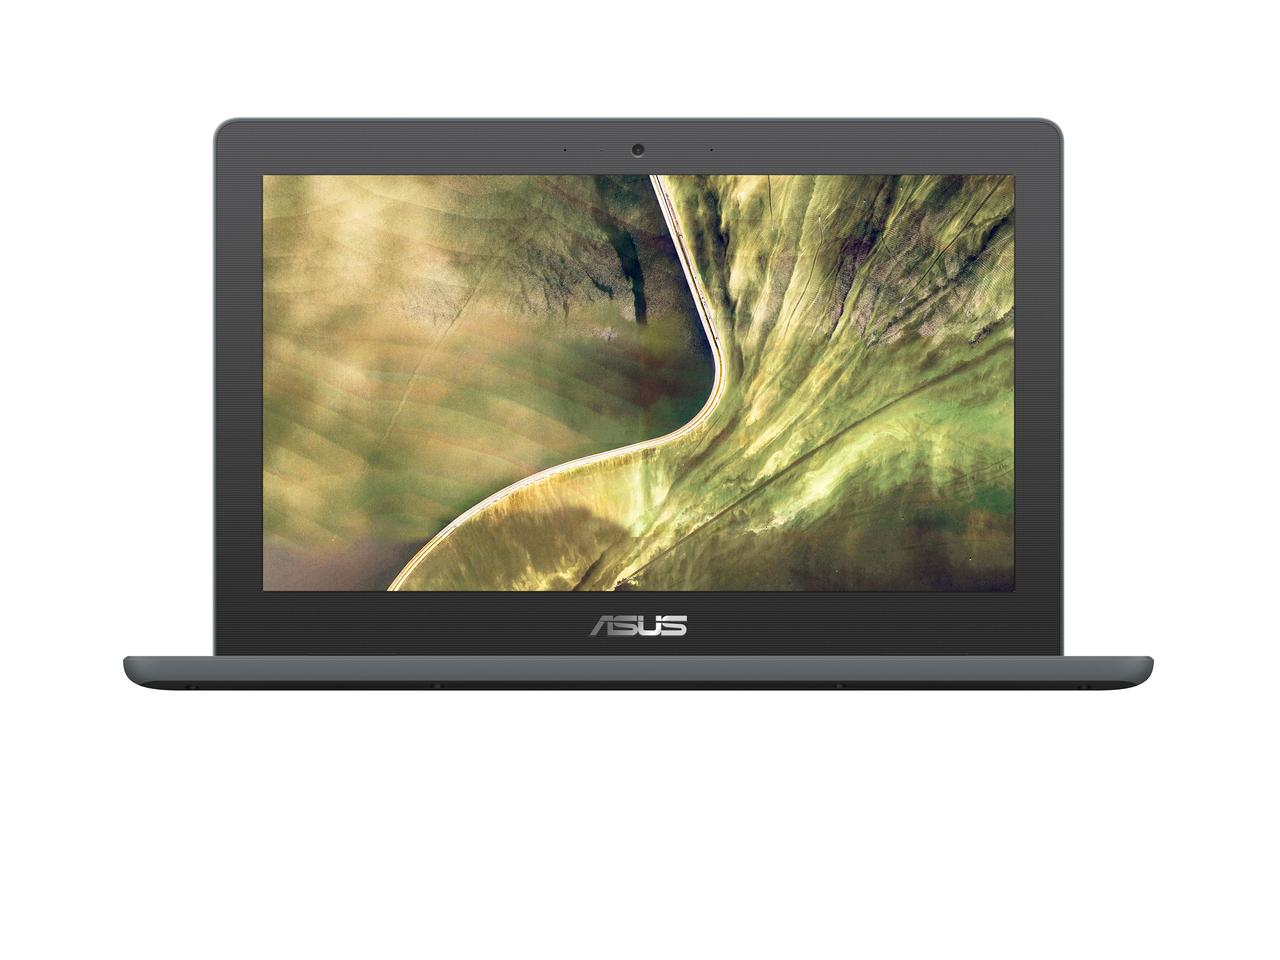 The Asus C204 is the successor to the company's C202 education-focused Chromebook from 2016